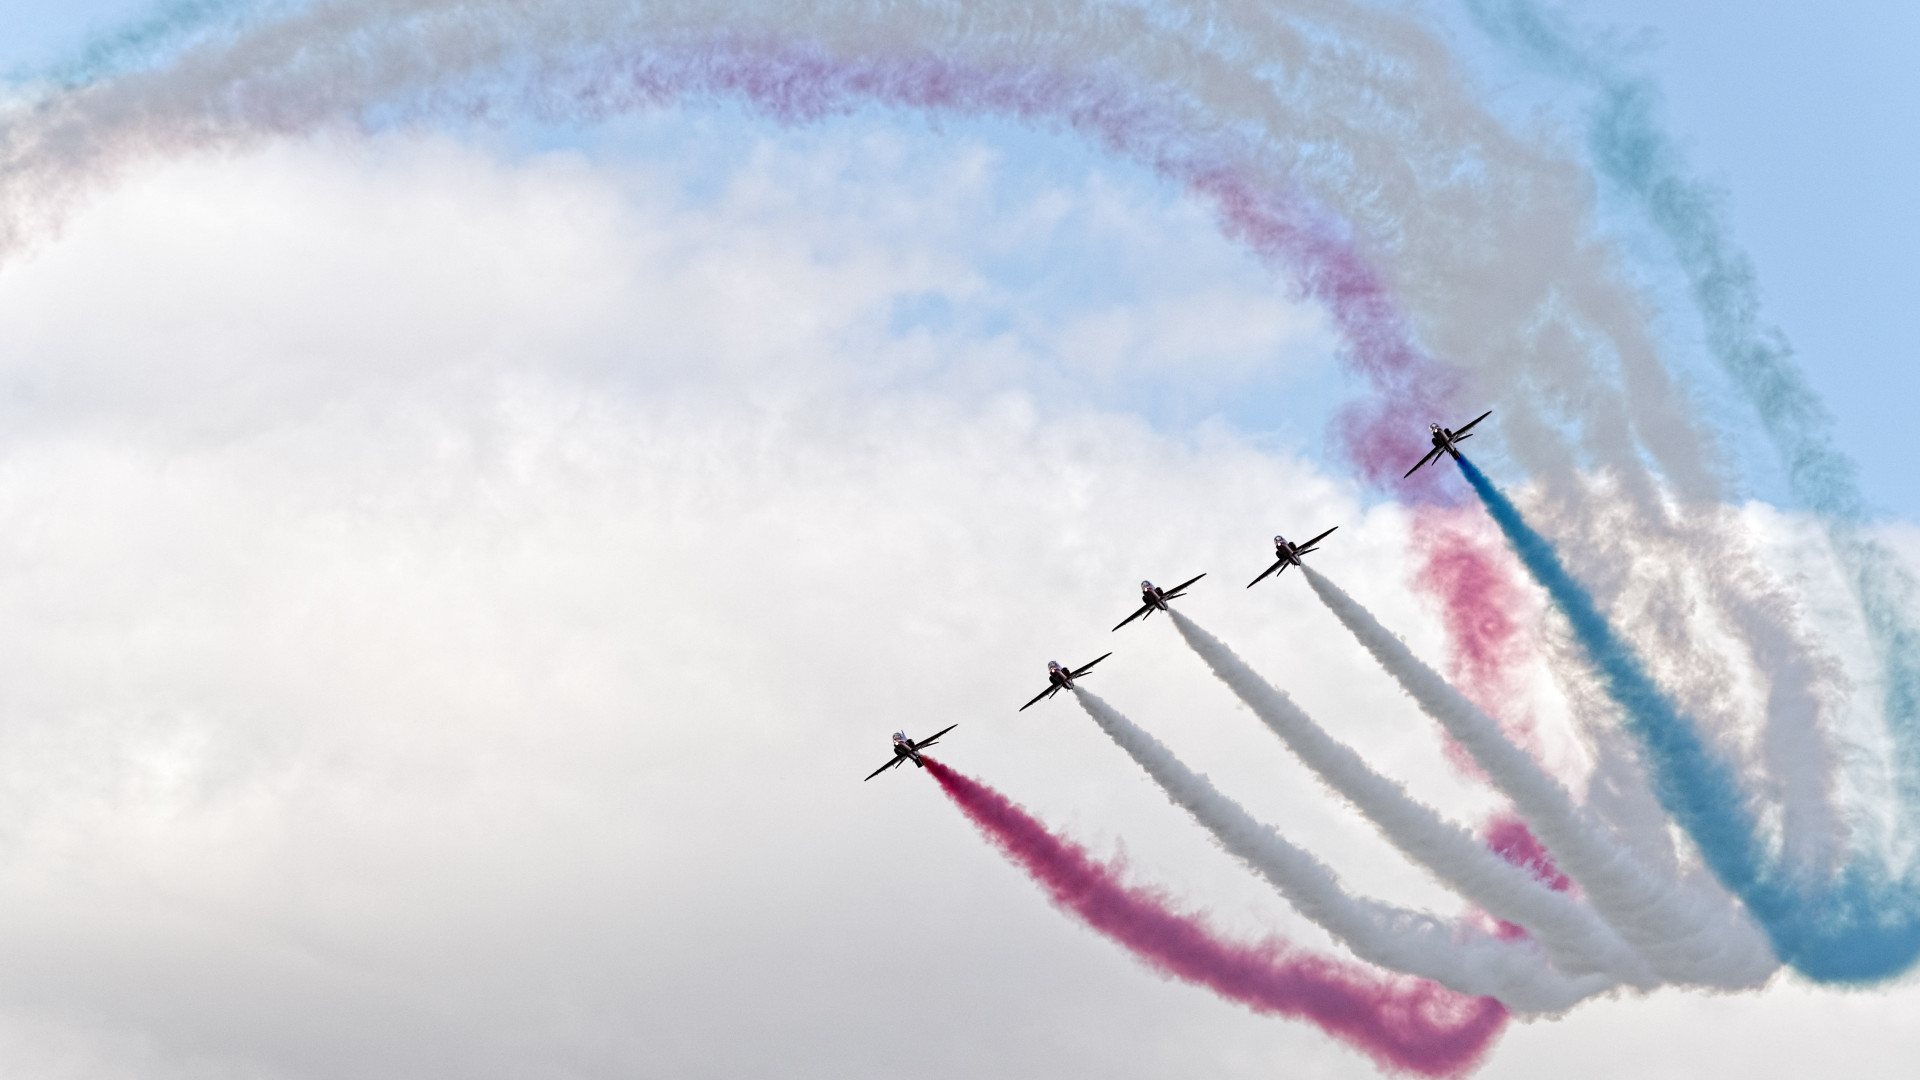 Red Arrows at Sywell Air Show wallpaper 1920x1080